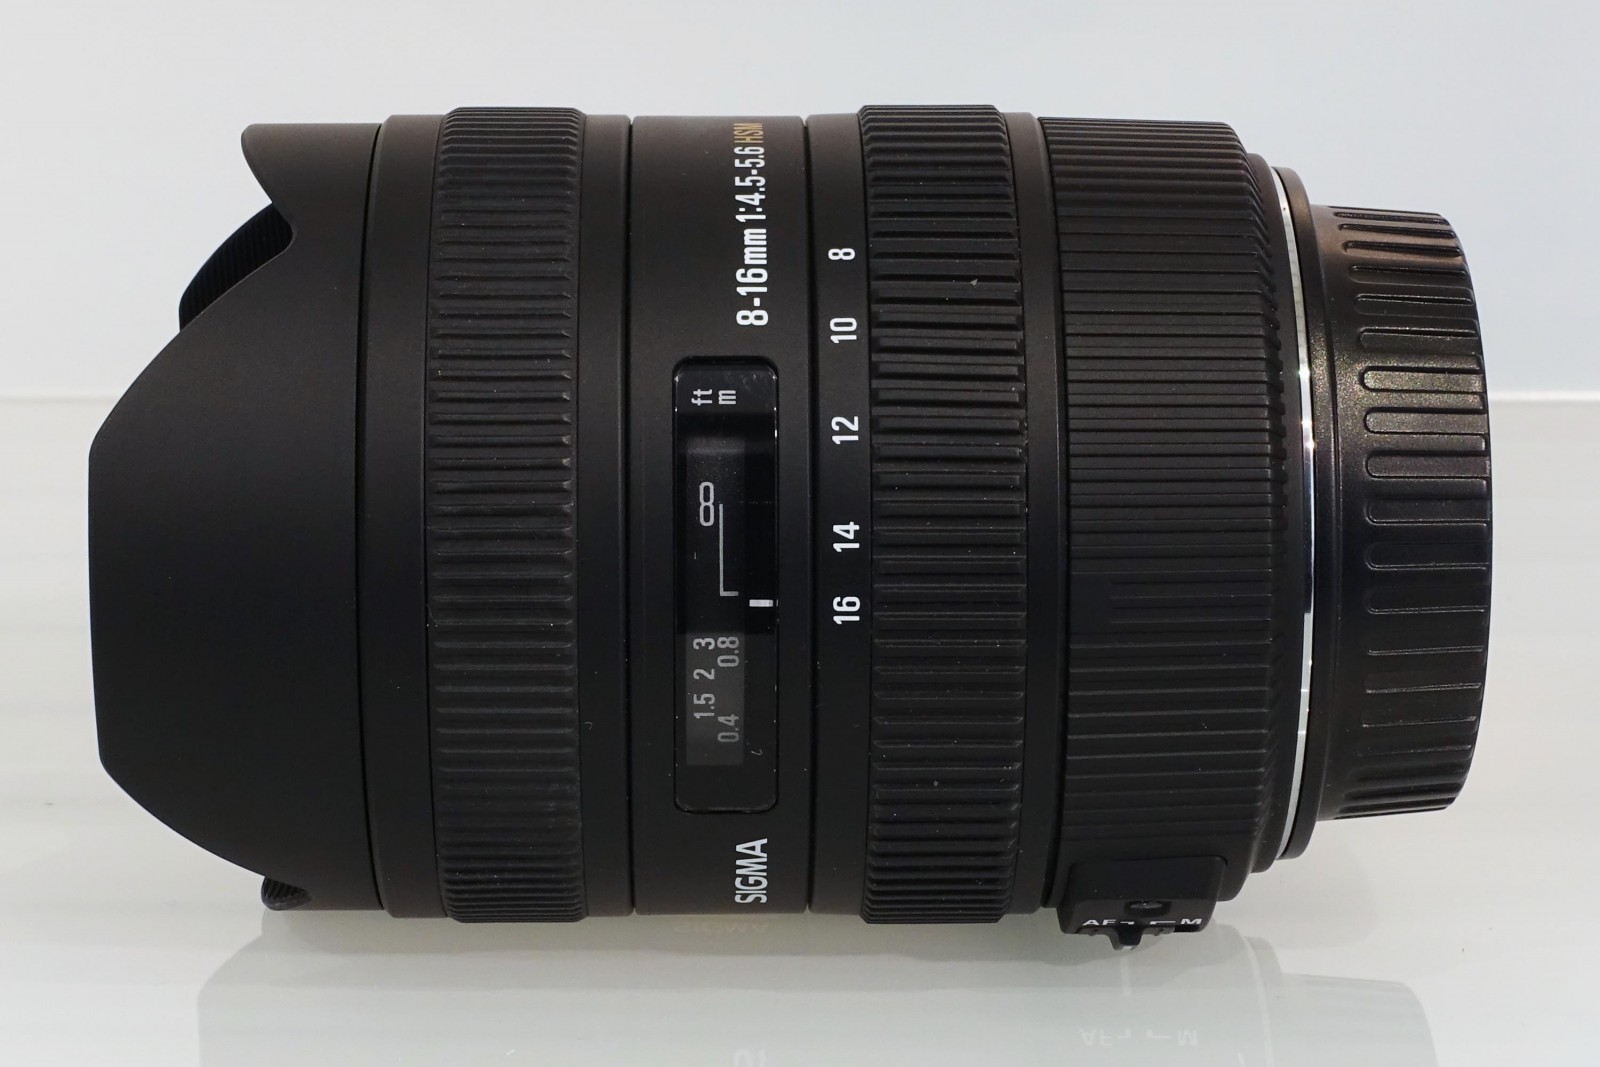 Sigma Canon 8-16mm 4,5-5,6 HSM